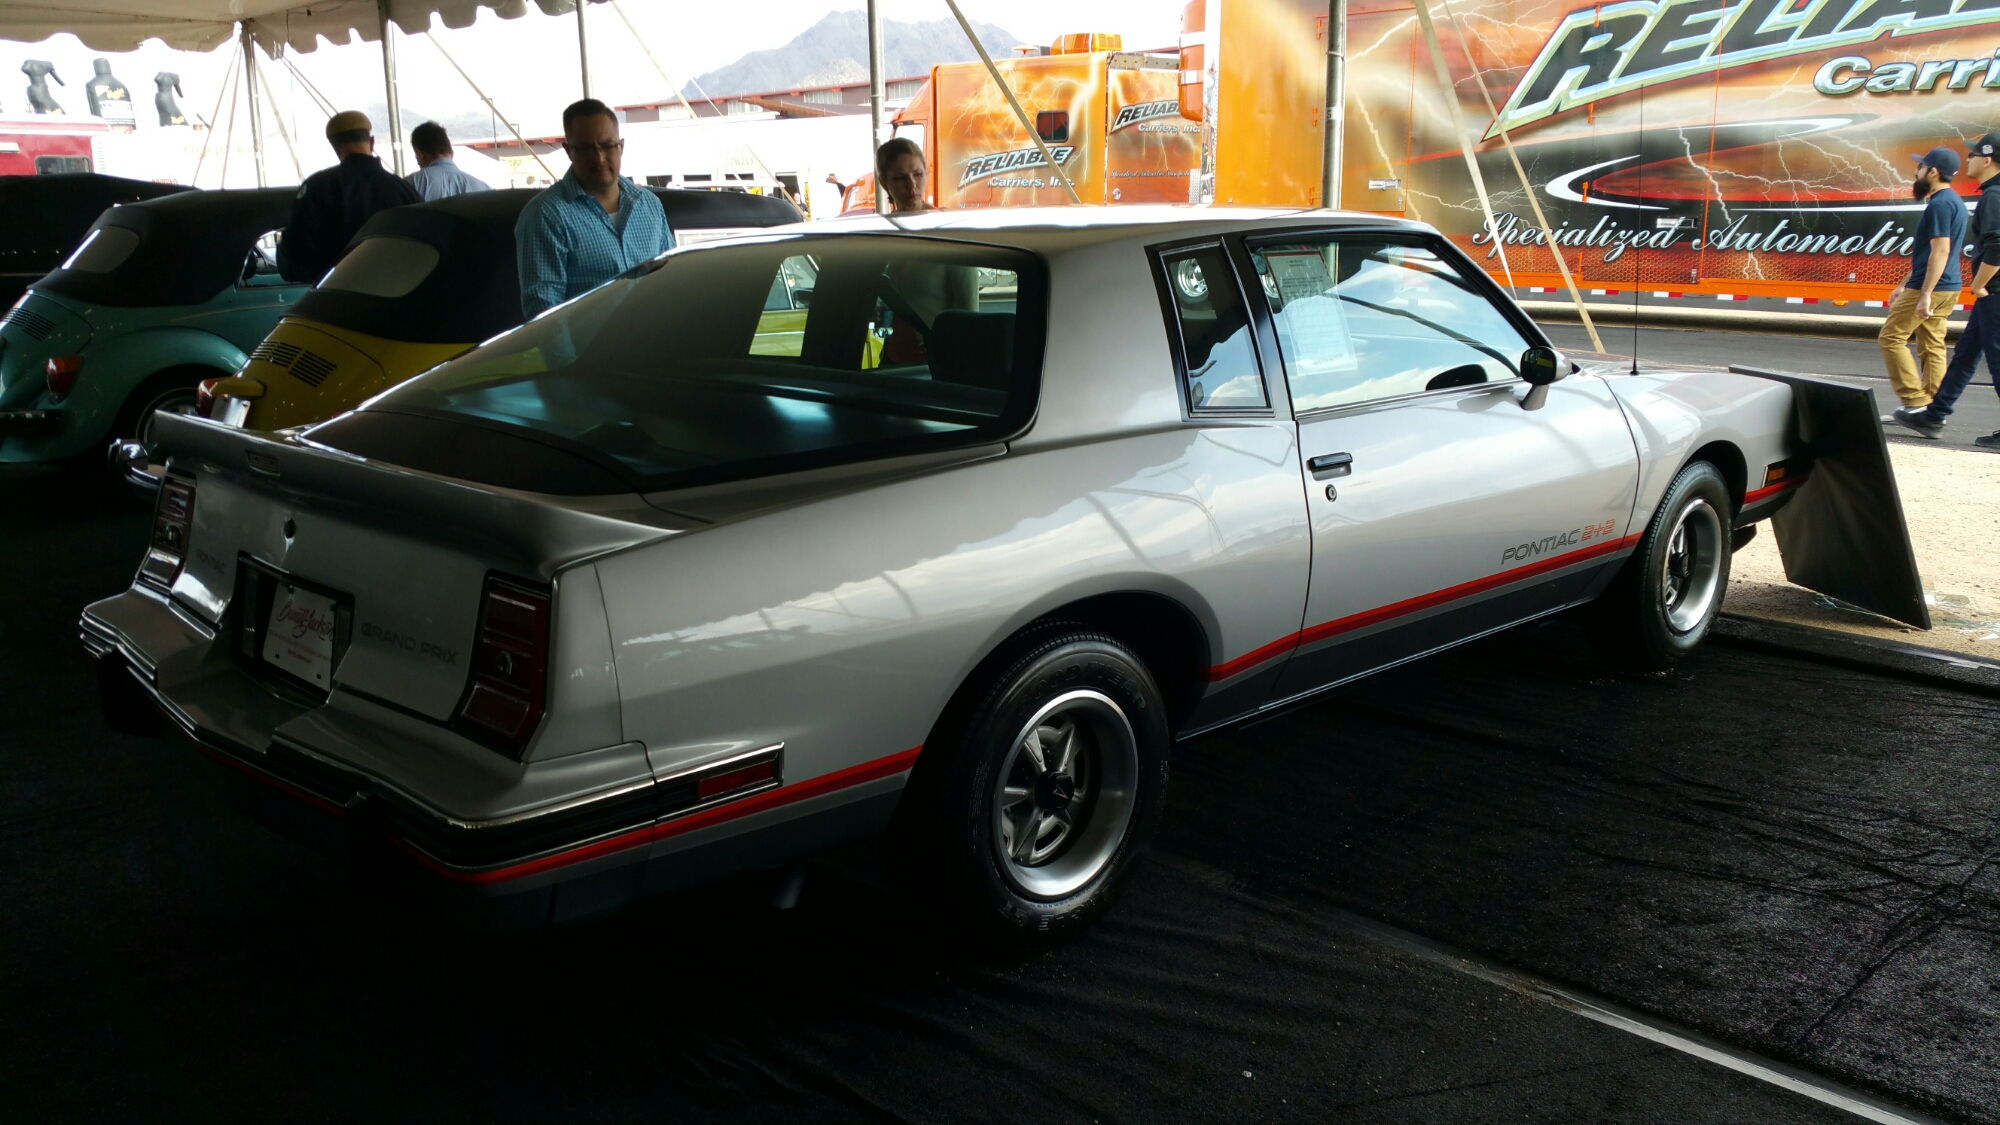 Barrett jackson generation high output one of the more interesting vehicles found at barrett jackson this year was this pontiac grand prix 22 among the more high profile g bodies like the monte sciox Image collections